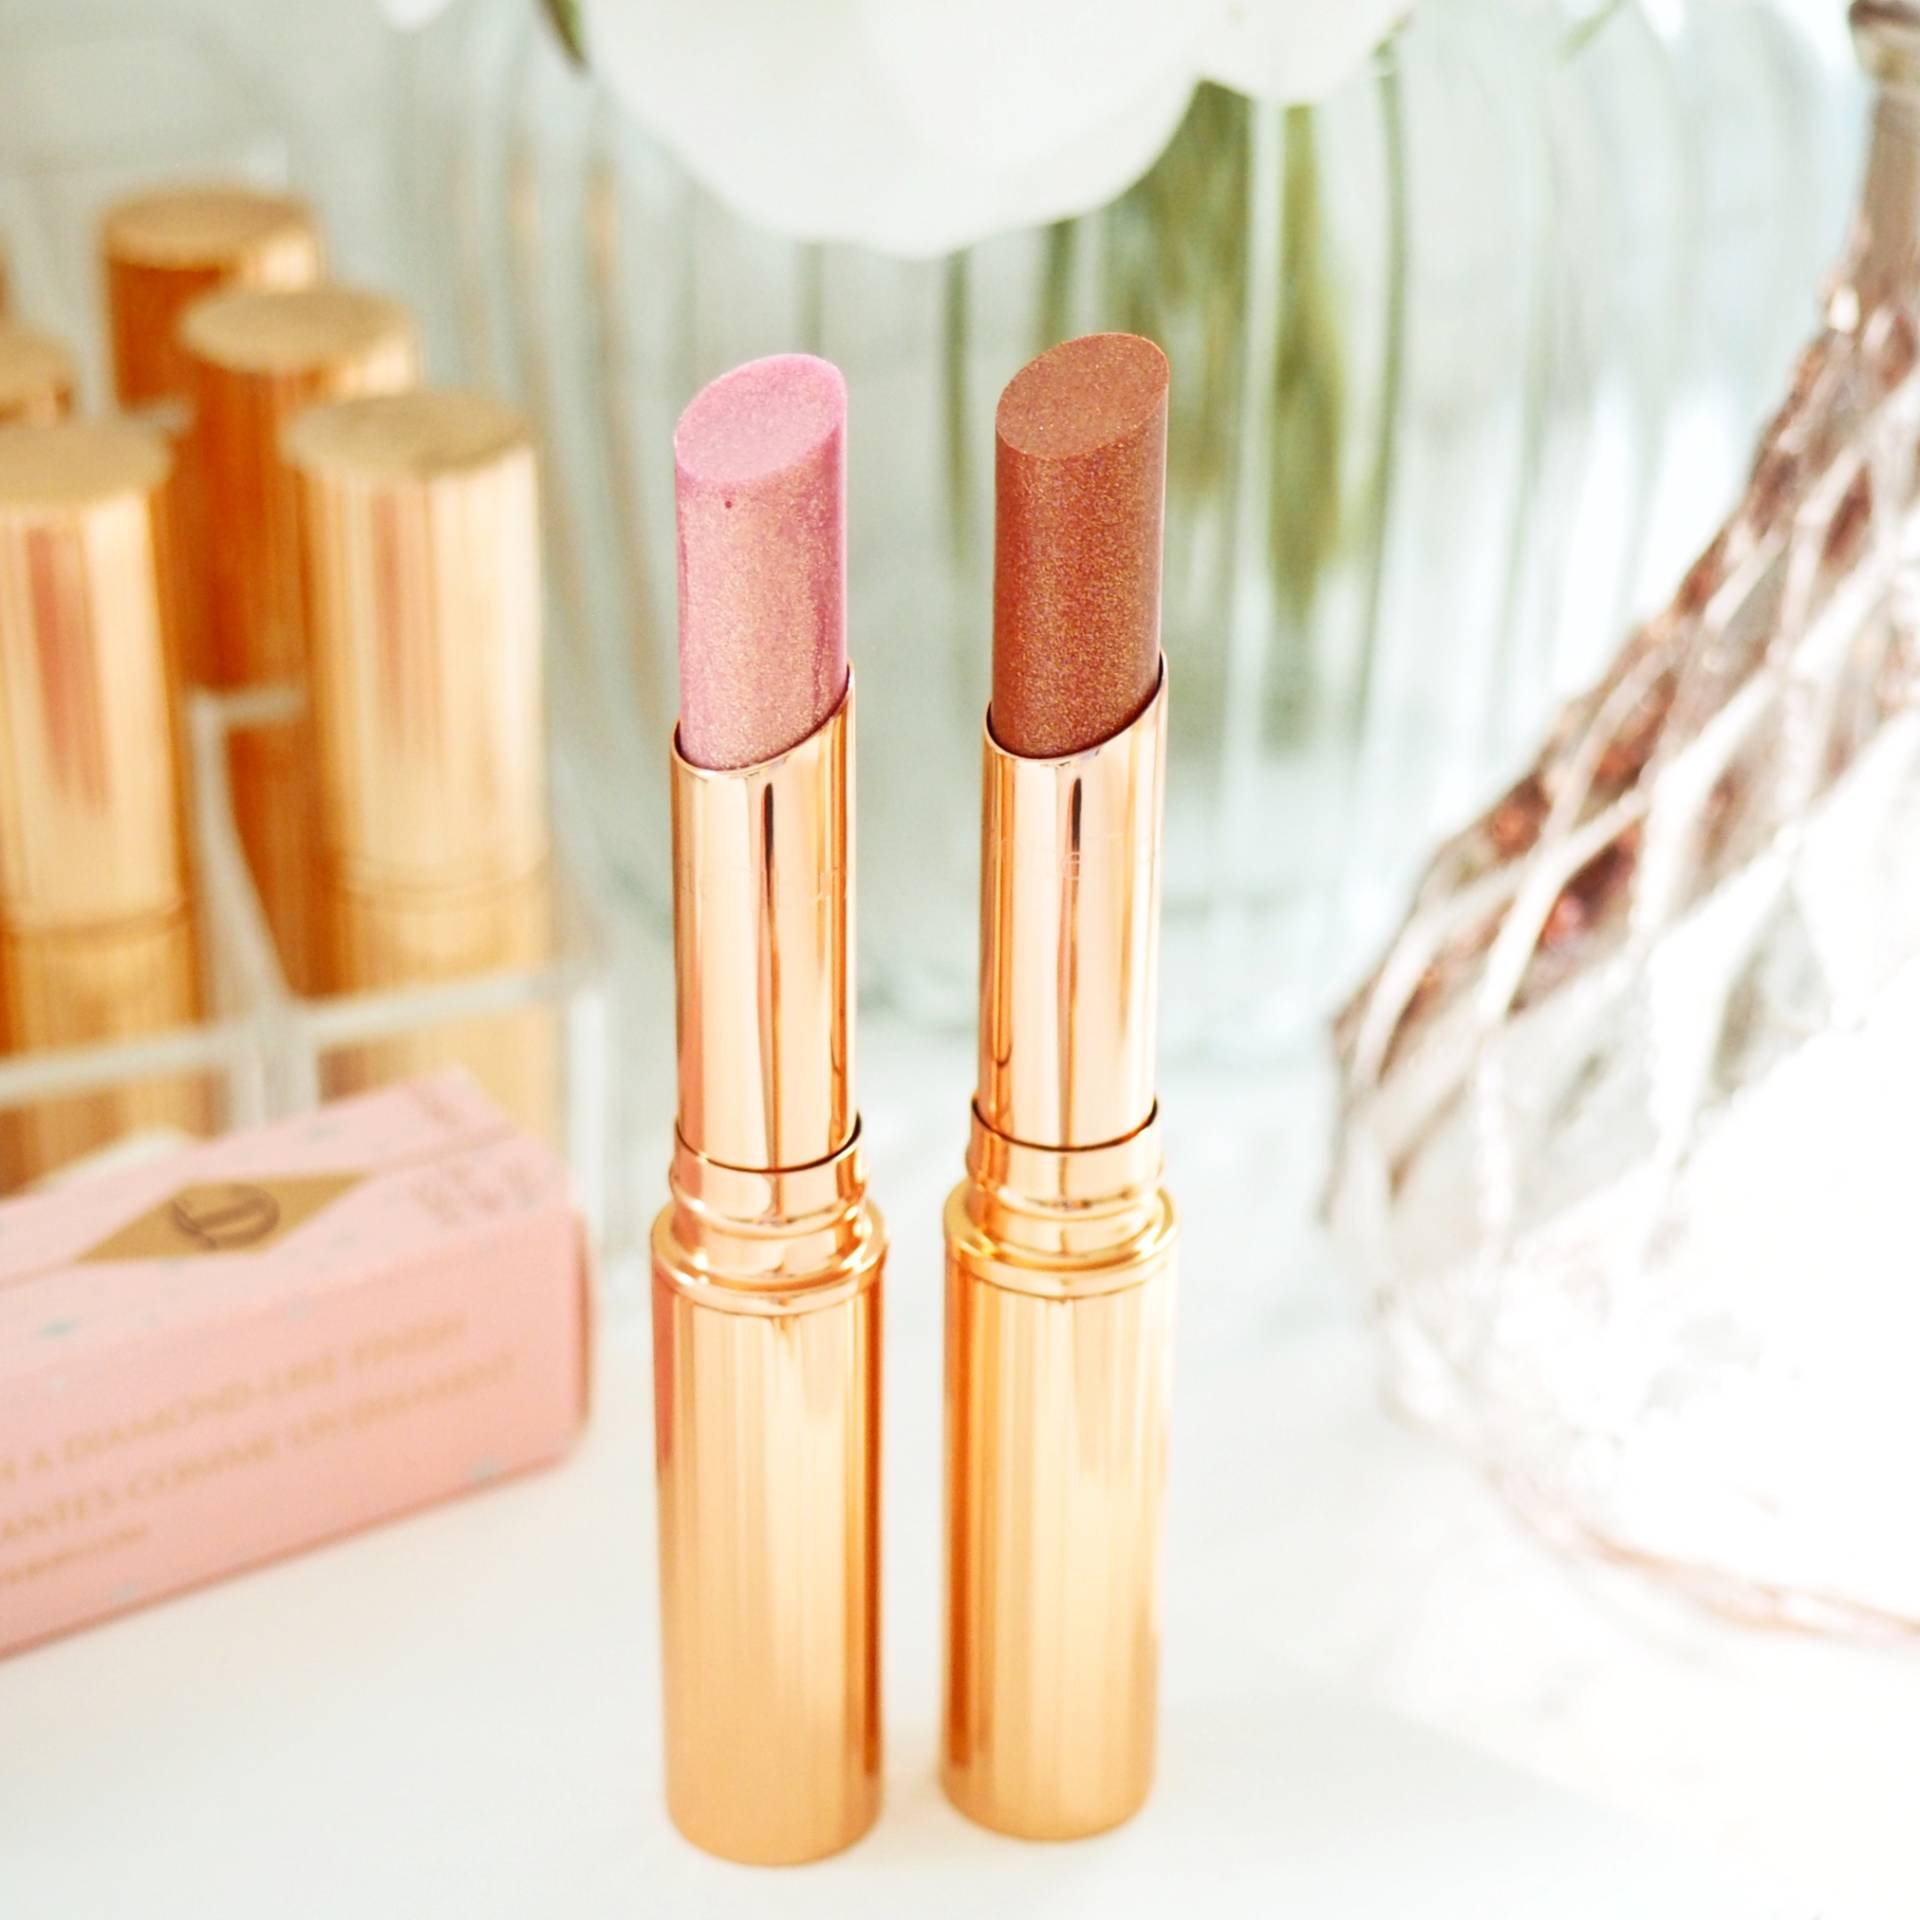 Charlotte Tilbury Pillow Talk Diamonds Lipsticks